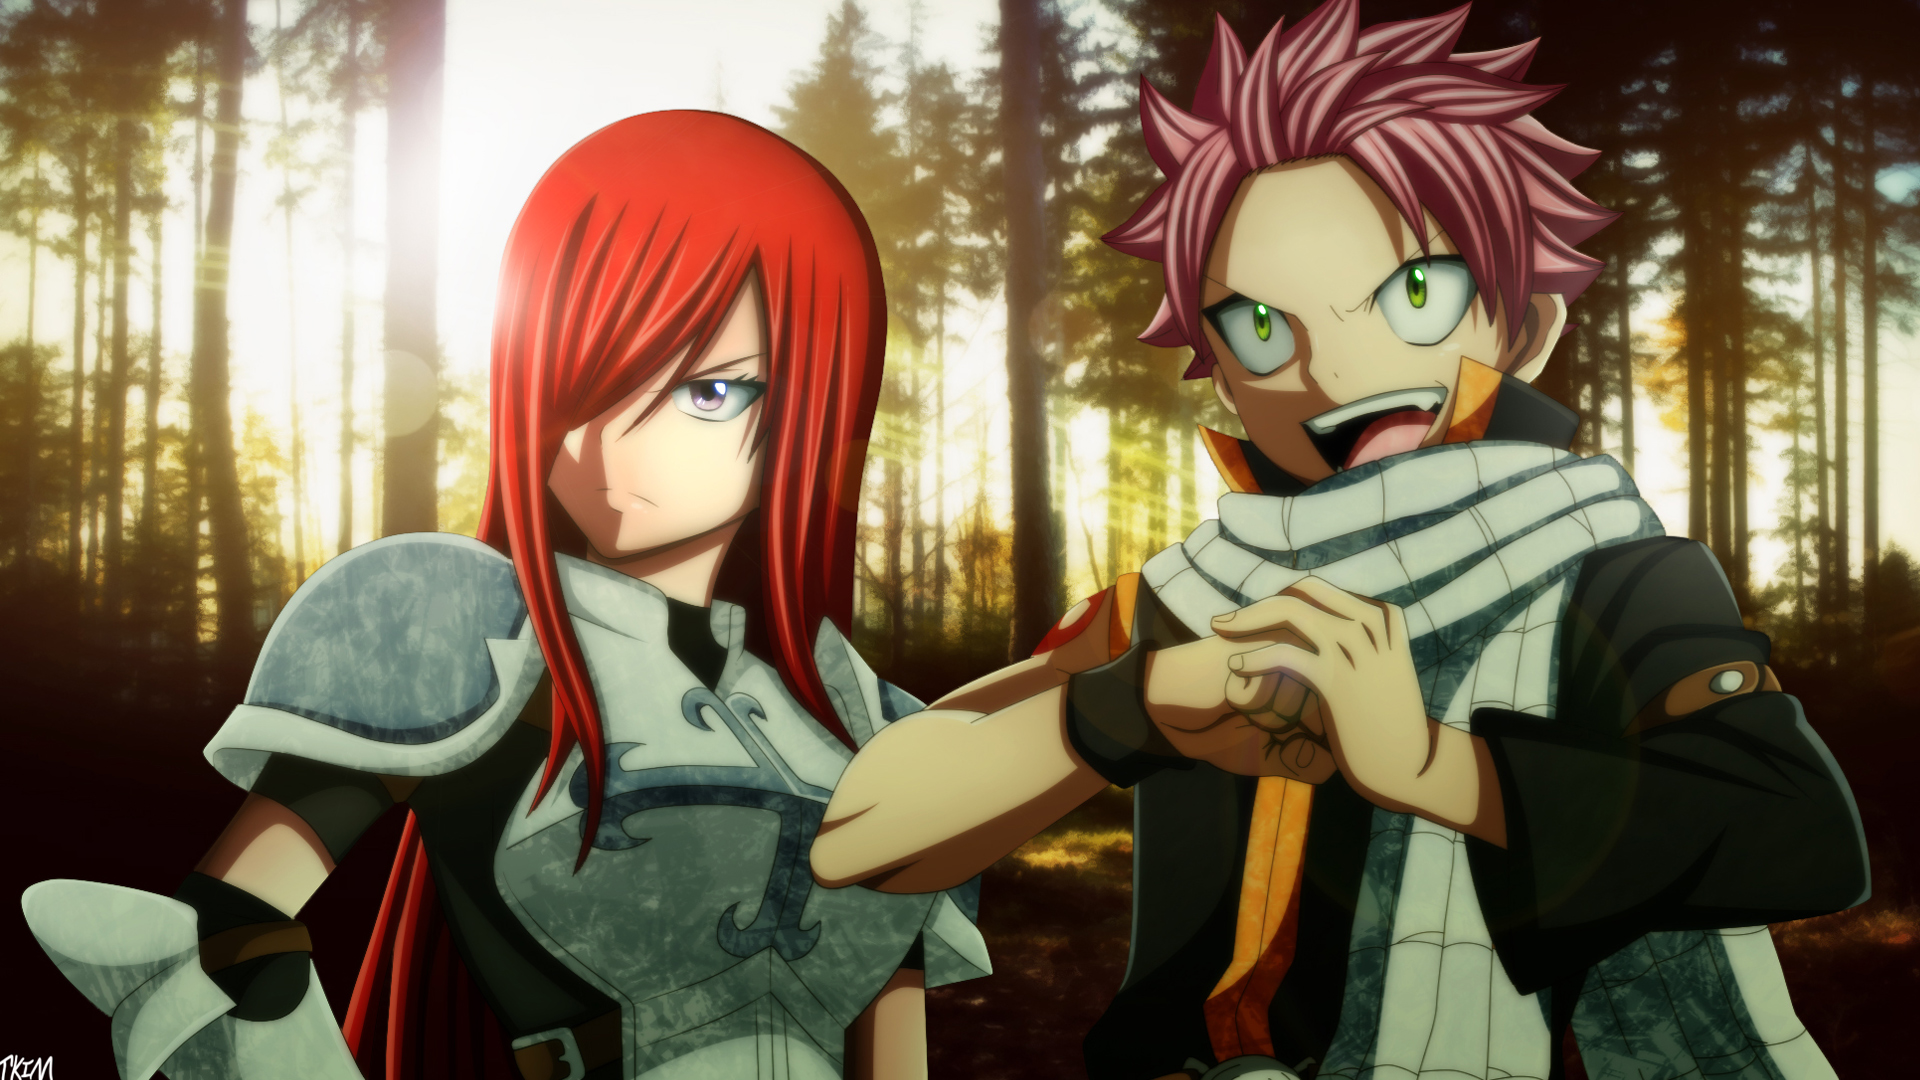 Anime wallpaper fairy tail erza wallpapers photo with high definition - Erza And Natsu Picture 2b Wallpaper Hd